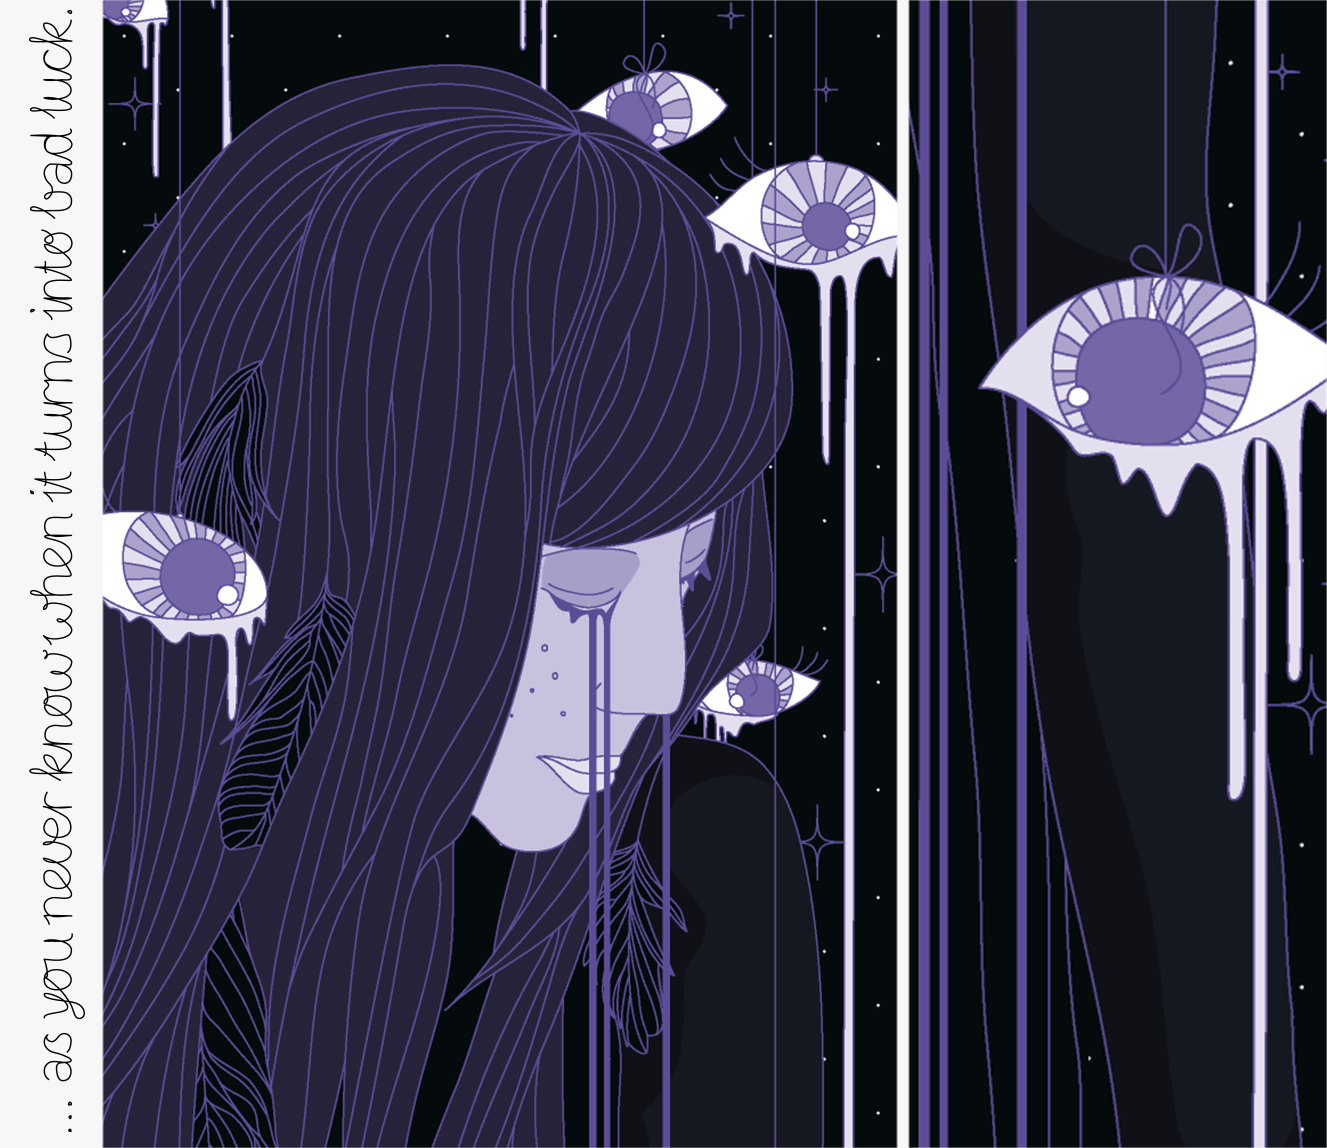 Illustration: Girl with long hair crying